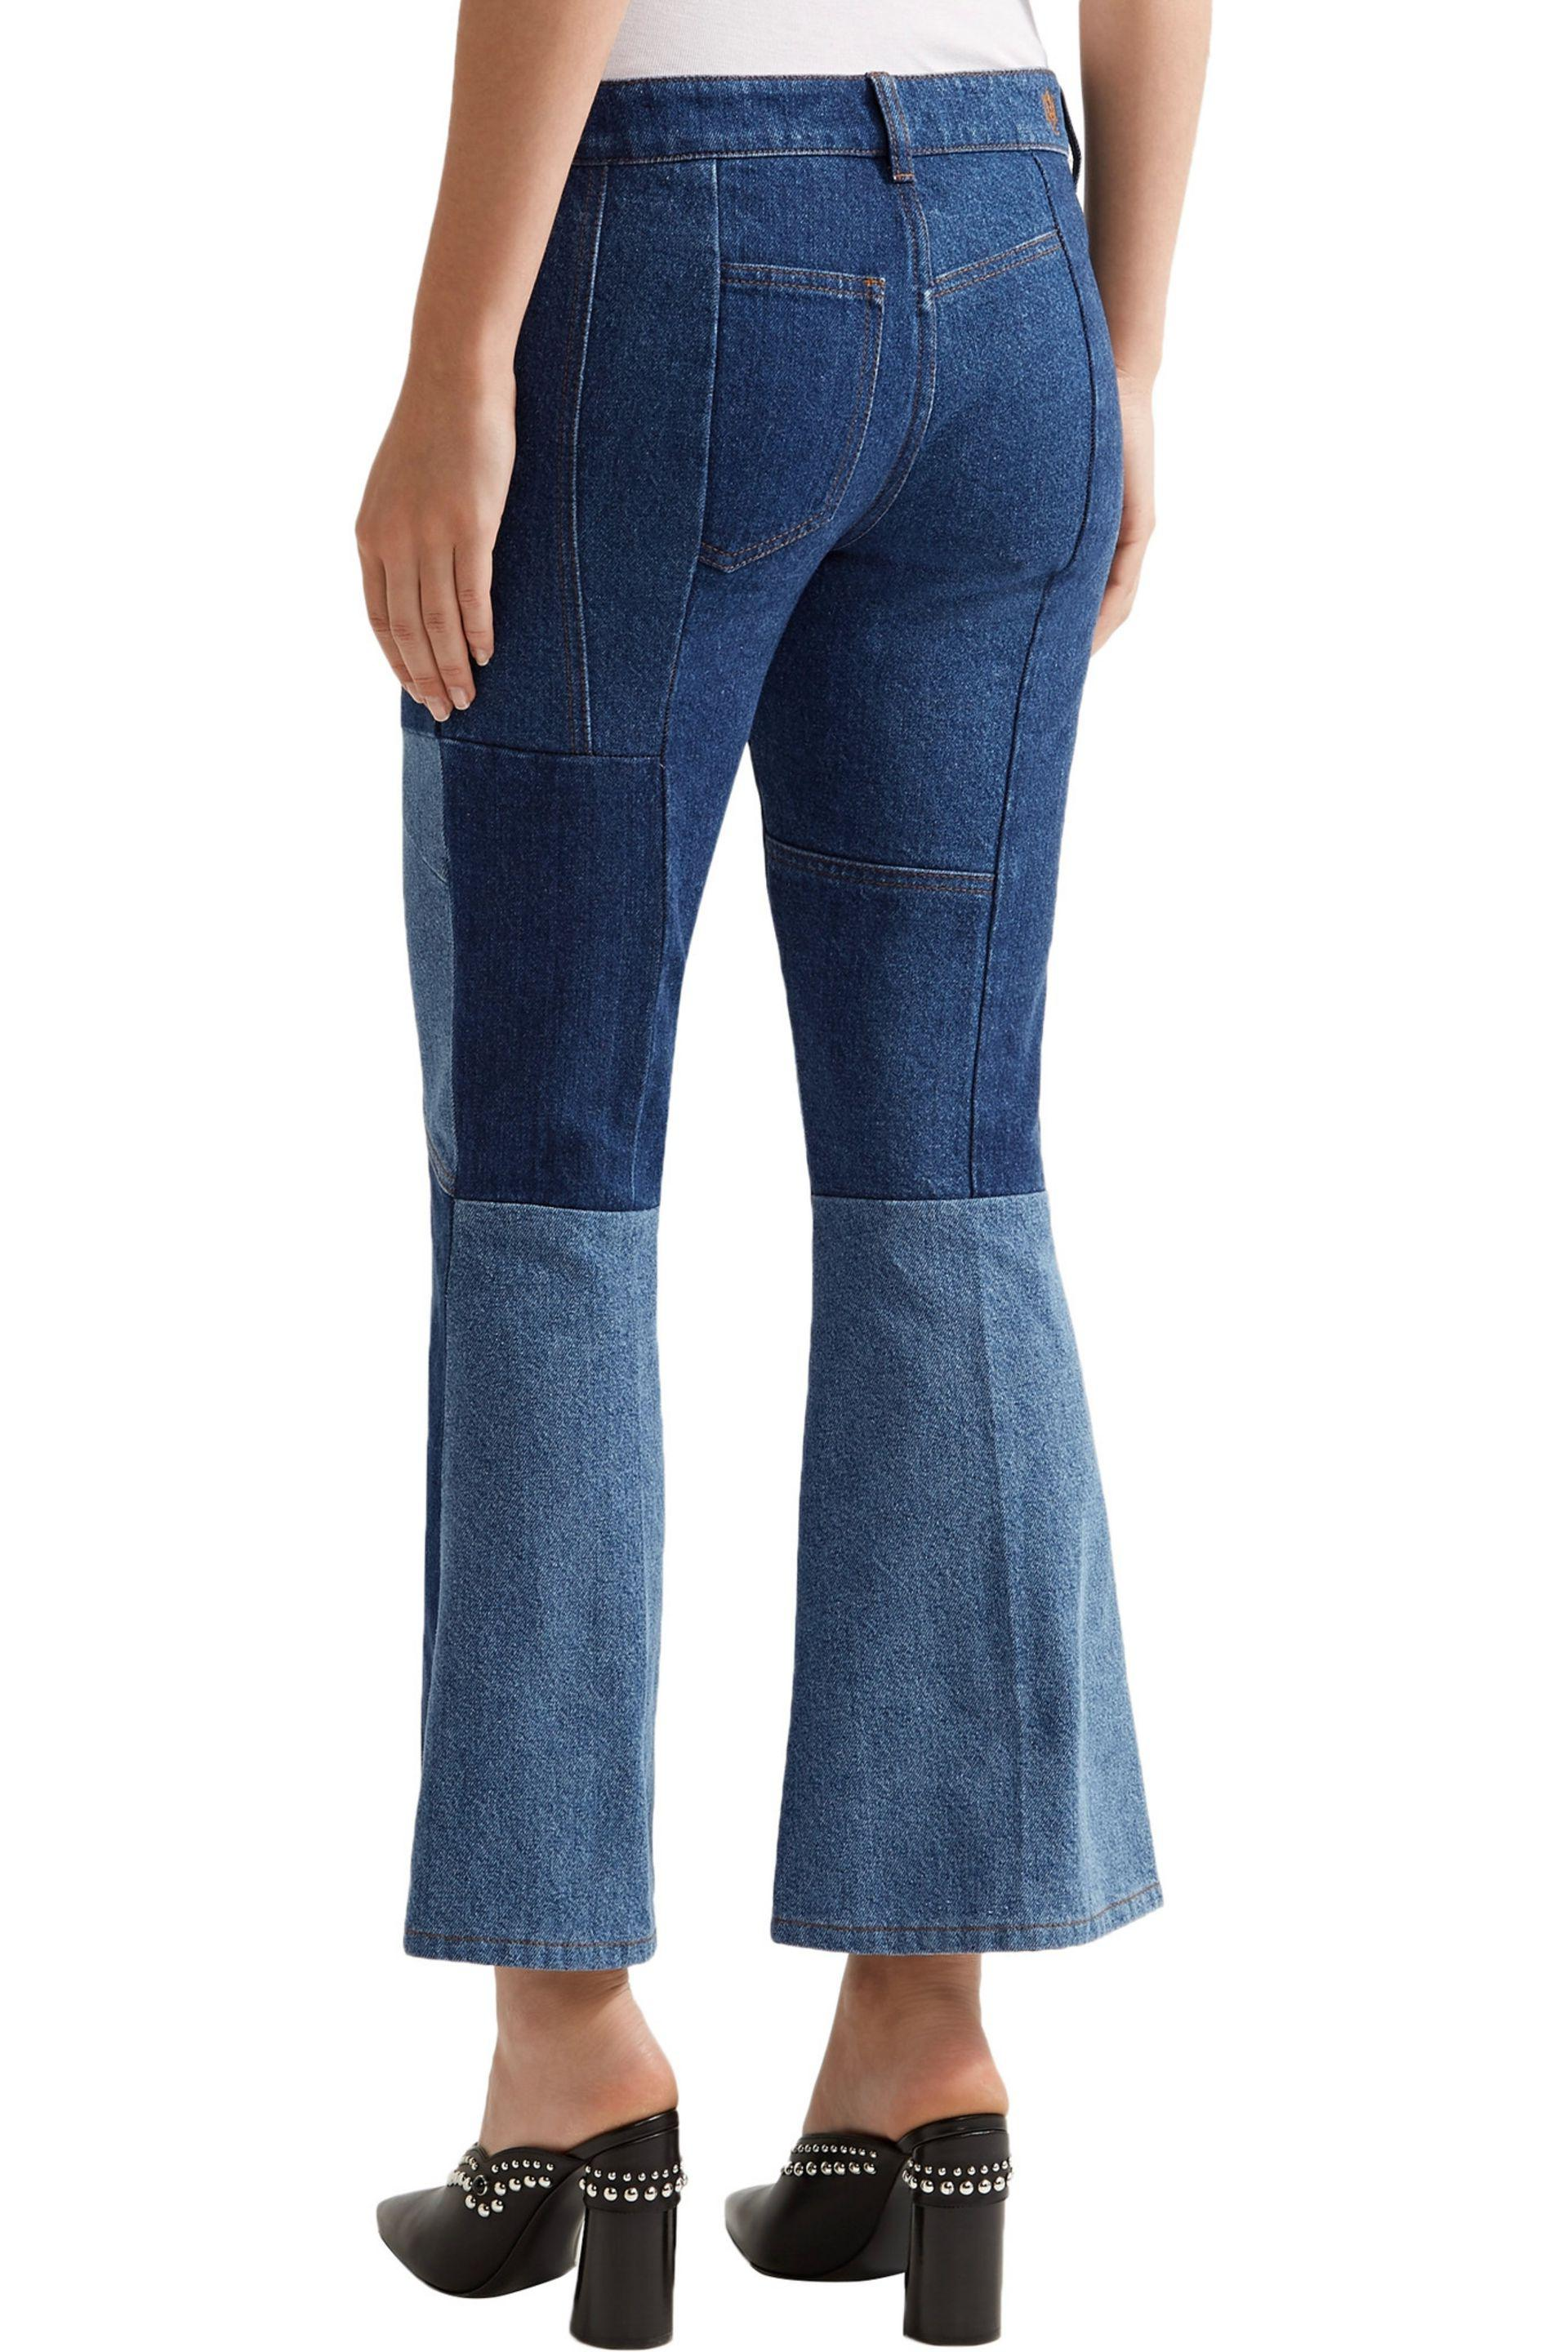 flared jeans - Blue Alexander McQueen Cheap Sale Choice Top Quality For Sale Shop Offer Cheap Online Supply Cheap Price Limit Discount DOF7nK8PoB